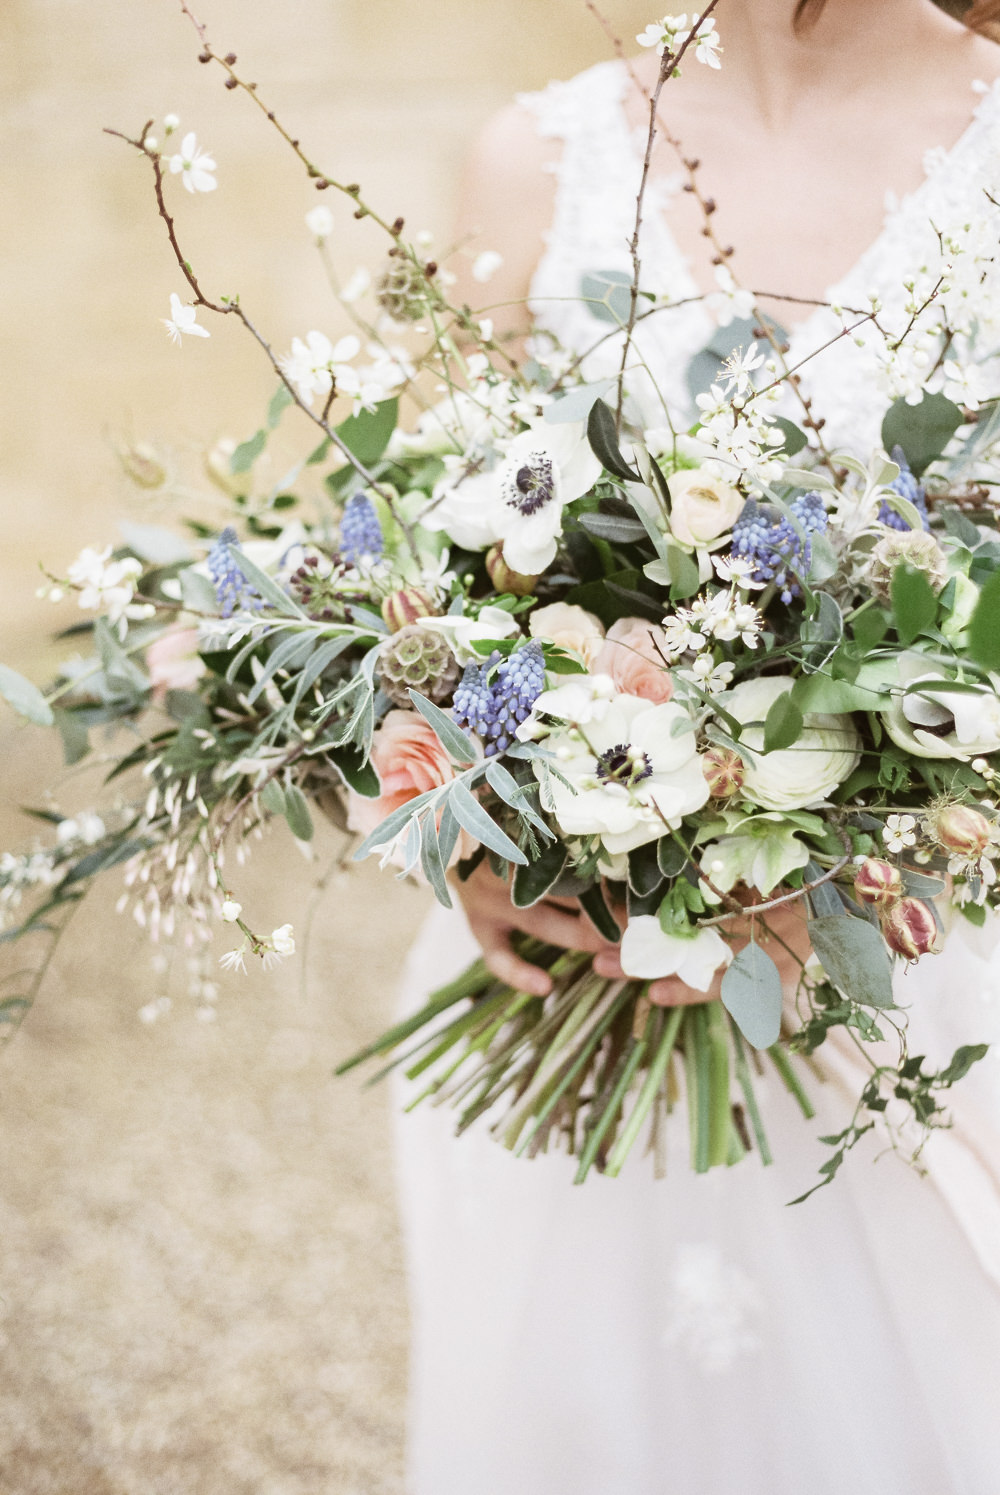 Bouquet Flowers Bride Bridal Grape Hyacinth Anemone Greenery Folliage Nigella Seeds Scabious Blossom Winter Blue Barn Wedding Ideas Joanna Briggs Photography